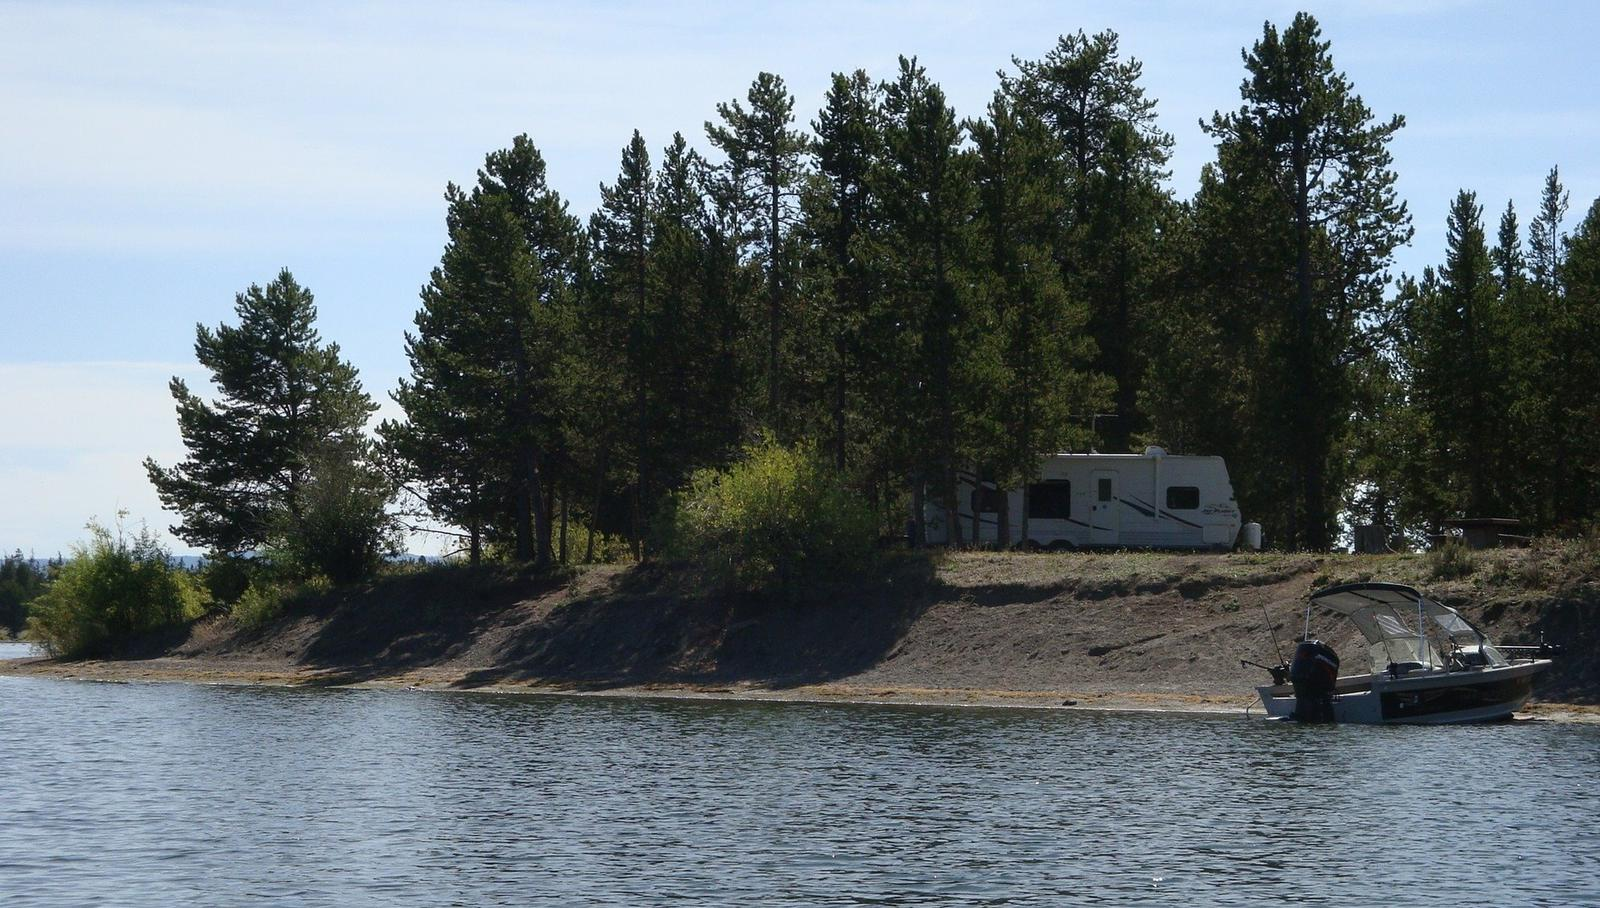 View of Lonesomehurst Campground from Hebgen Lake, boat, RV & pine treesLonesomehurst Campground